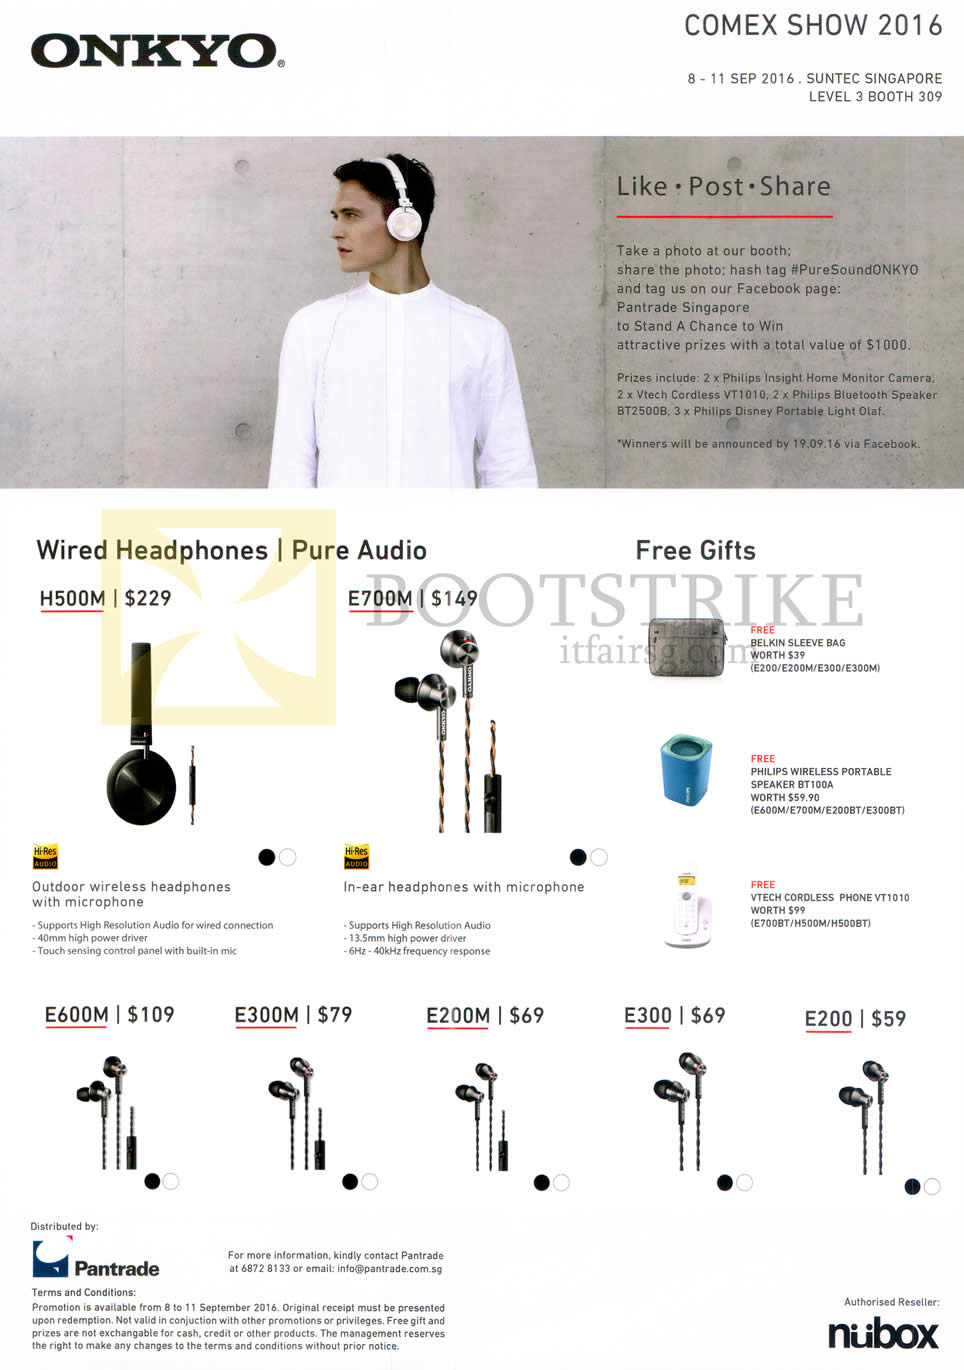 COMEX 2016 price list image brochure of Nubox Onkyo Headphone, Earphones H500M, E700M, E600M, E300M, E200M, E300, E200